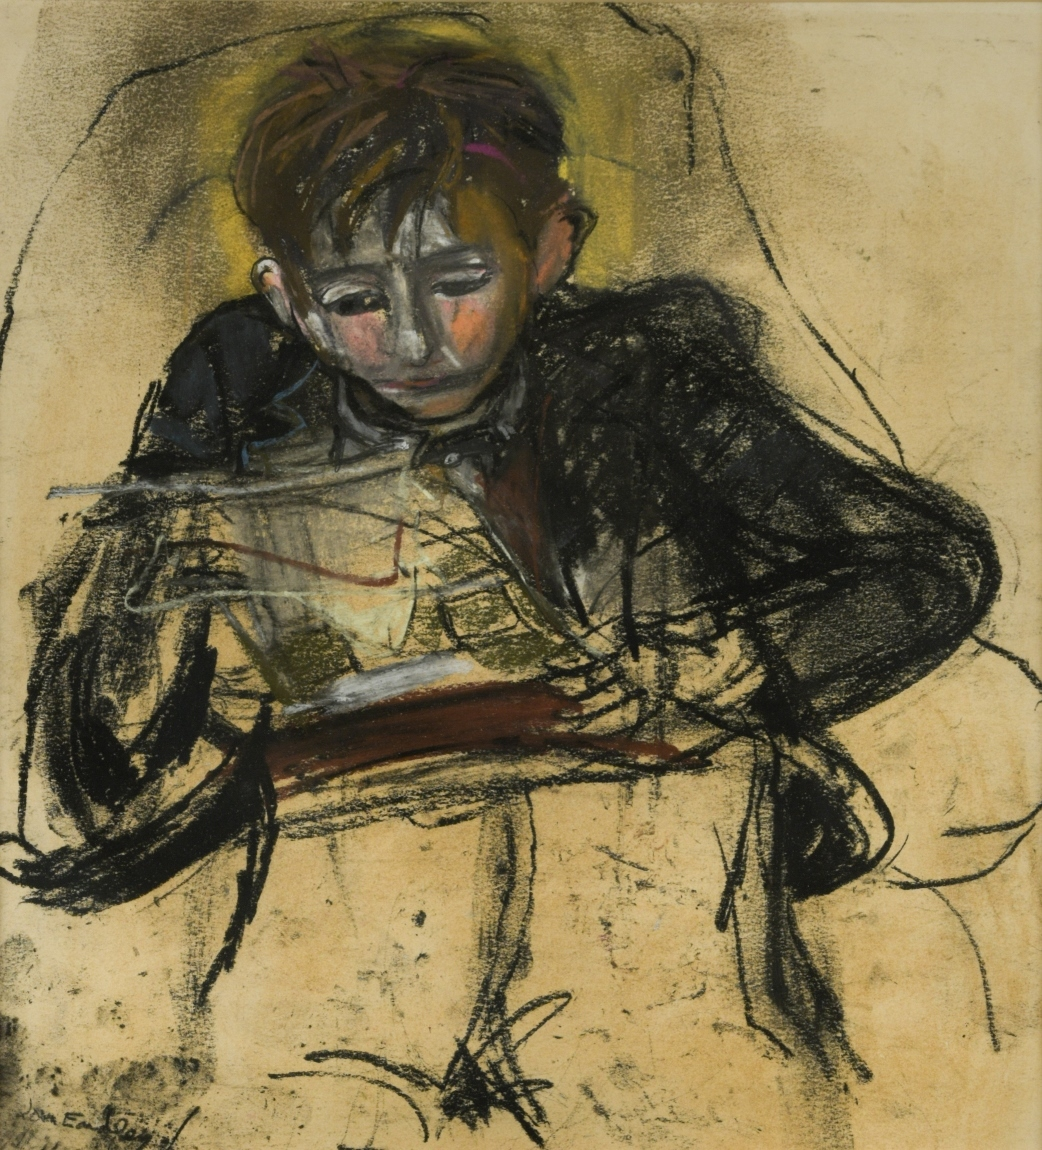 Scottish art sold as English council auctions artworks from its collections